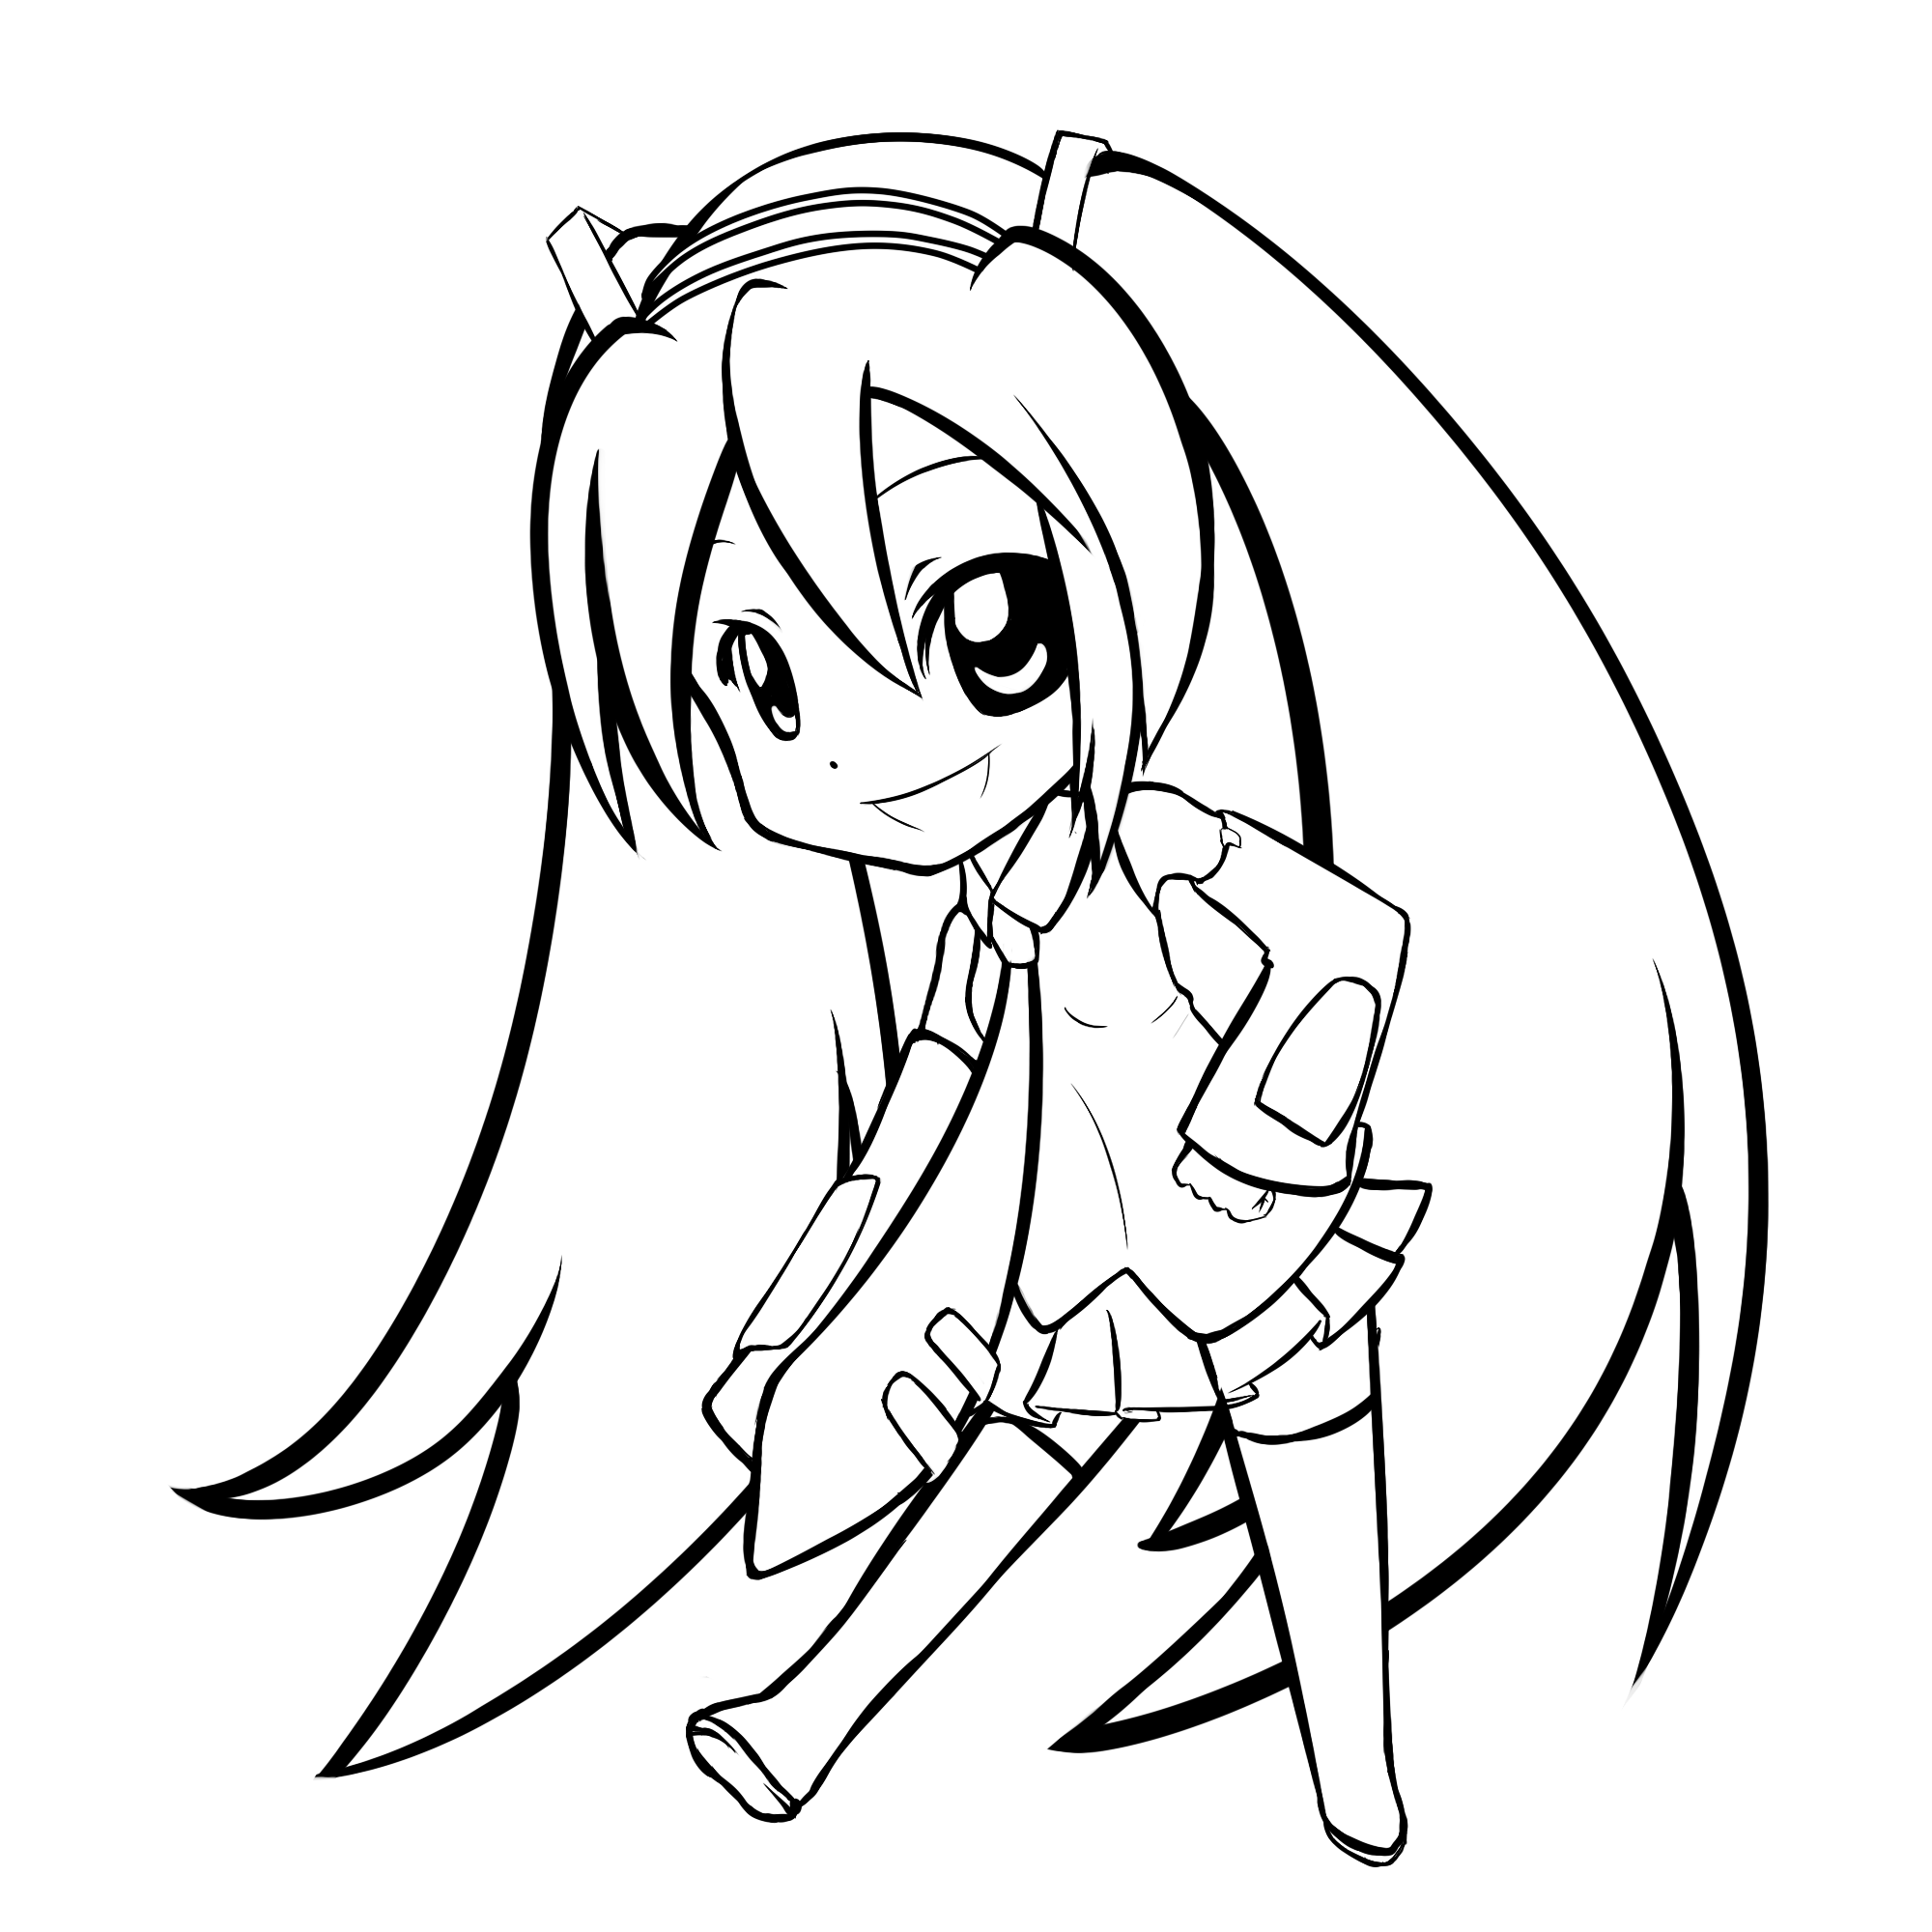 coloring pages anime chibi chibis free chibi coloring pages yampuff39s stuff coloring chibi anime pages